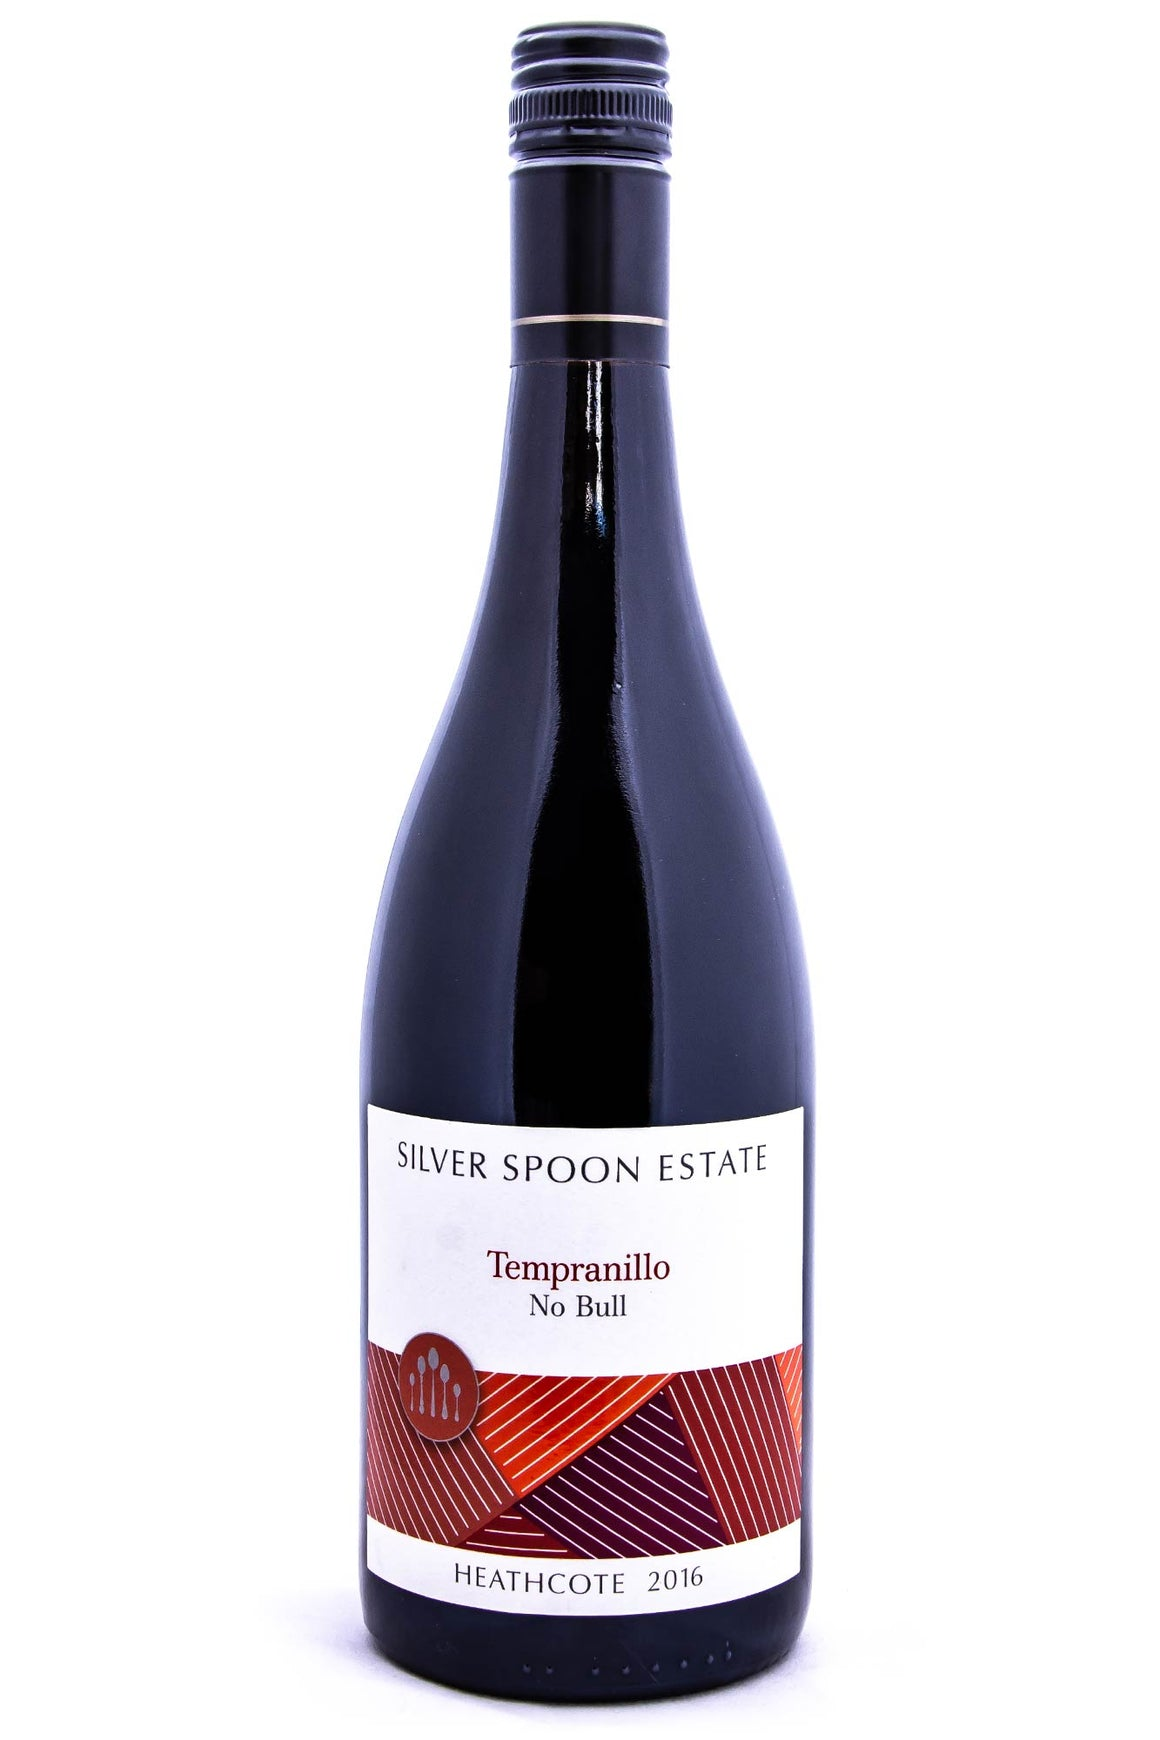 Silver Spoon Estate No Bull Tempranillo 2018